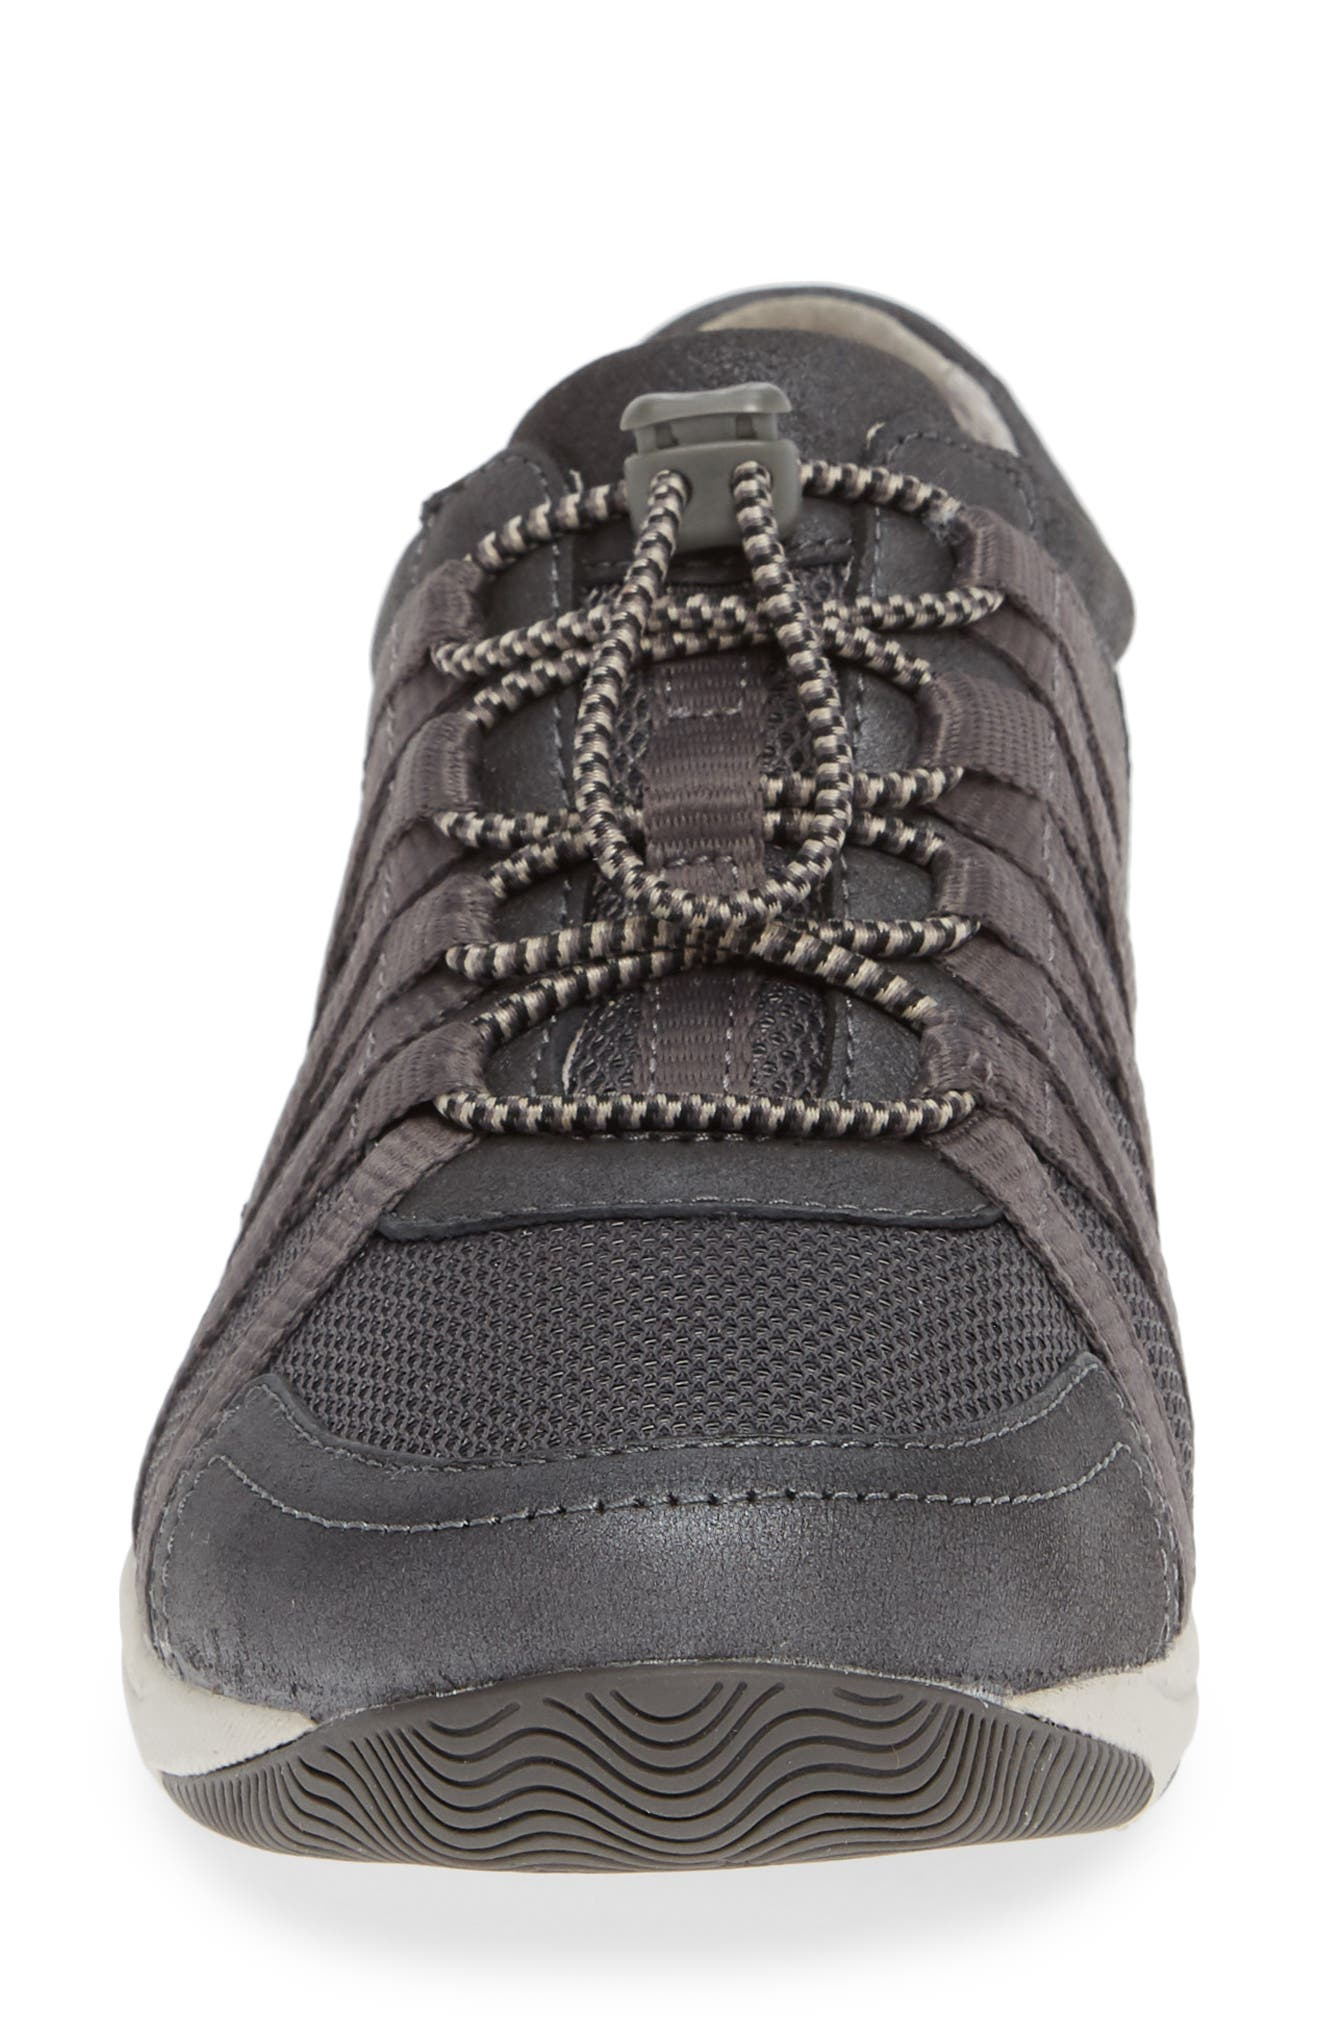 Halifax Collection Honor Sneaker,                             Alternate thumbnail 4, color,                             CHARCOAL/ CHARCOAL SUEDE